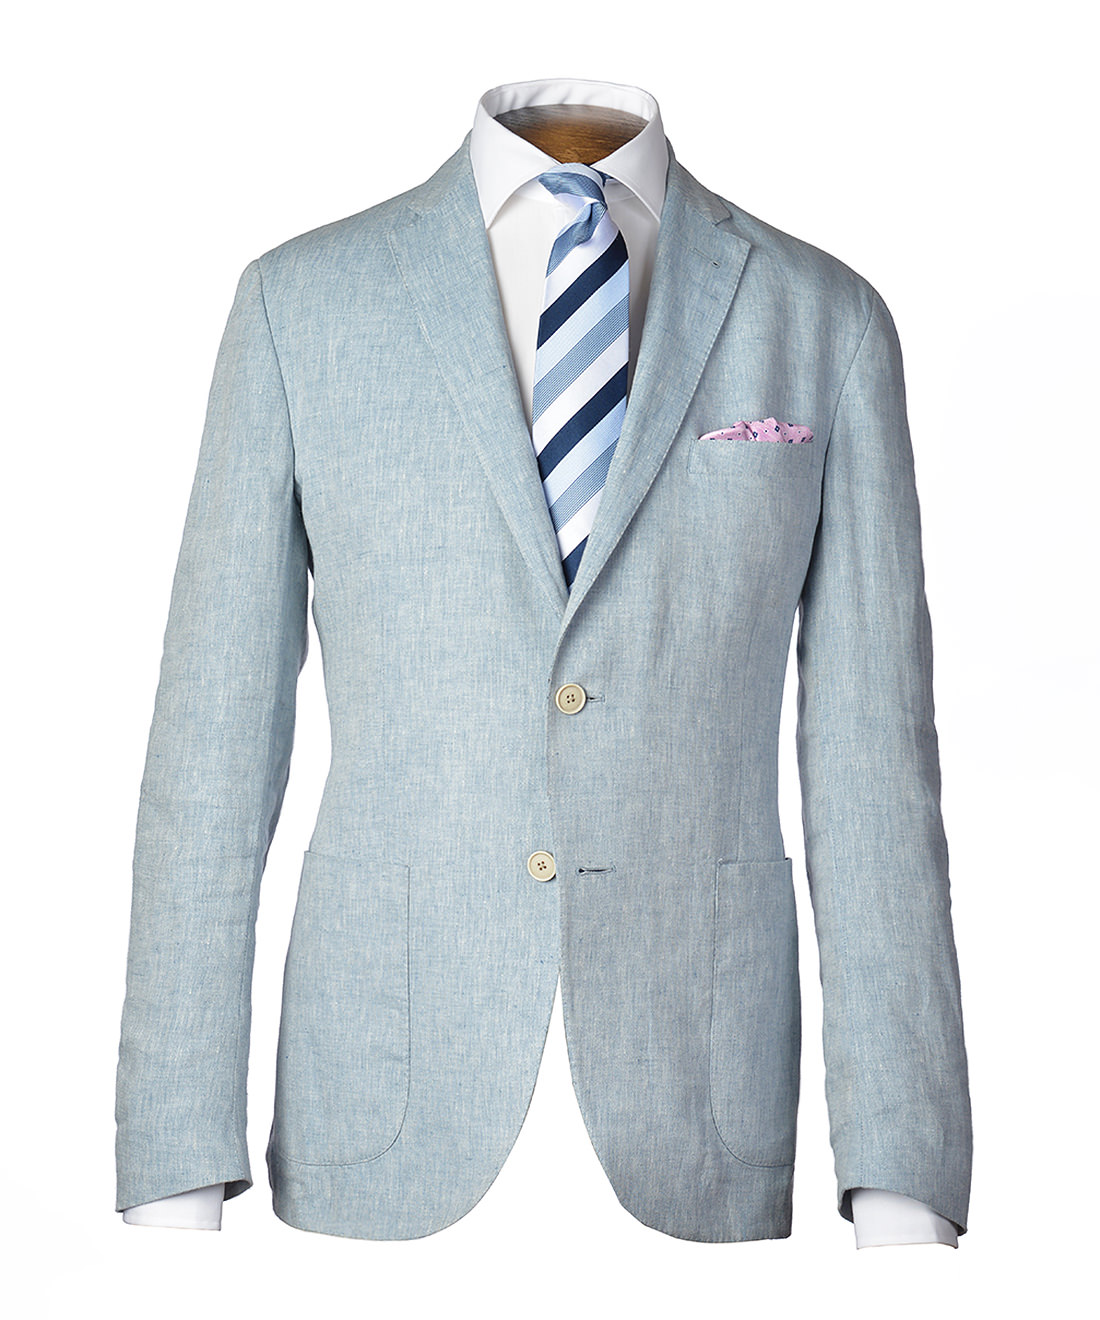 gagliardi light blue chambray linen jacket zlwesqf